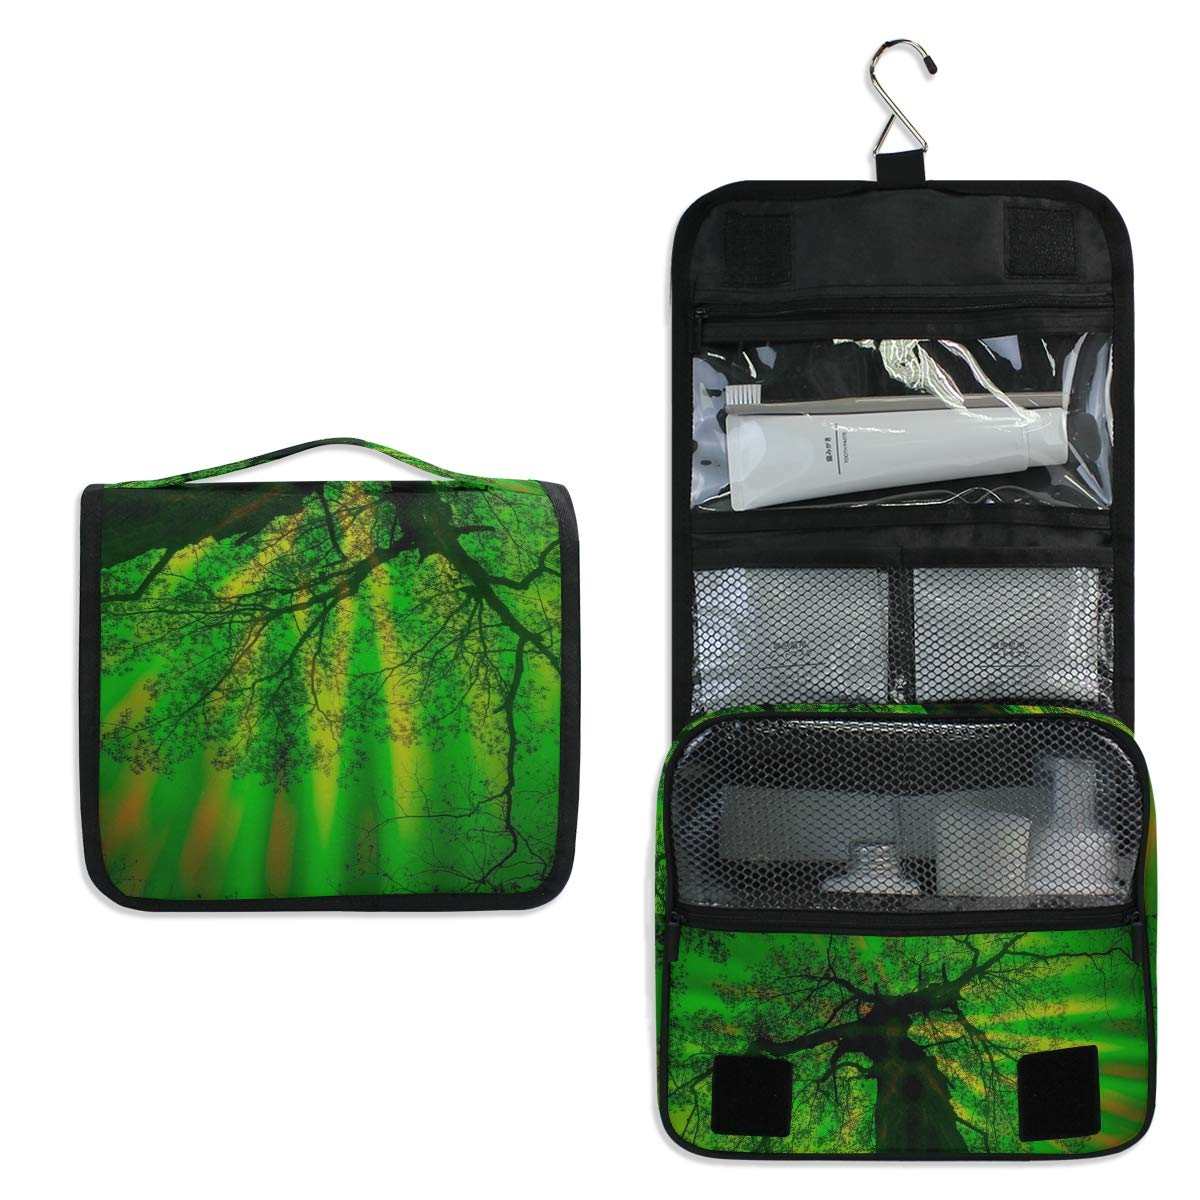 Toiletry Bag Travel Bag Hanging Hook - Green Forest Waterproof Cosmetic Bag Portable Makeup Pouch for Girls Men Women